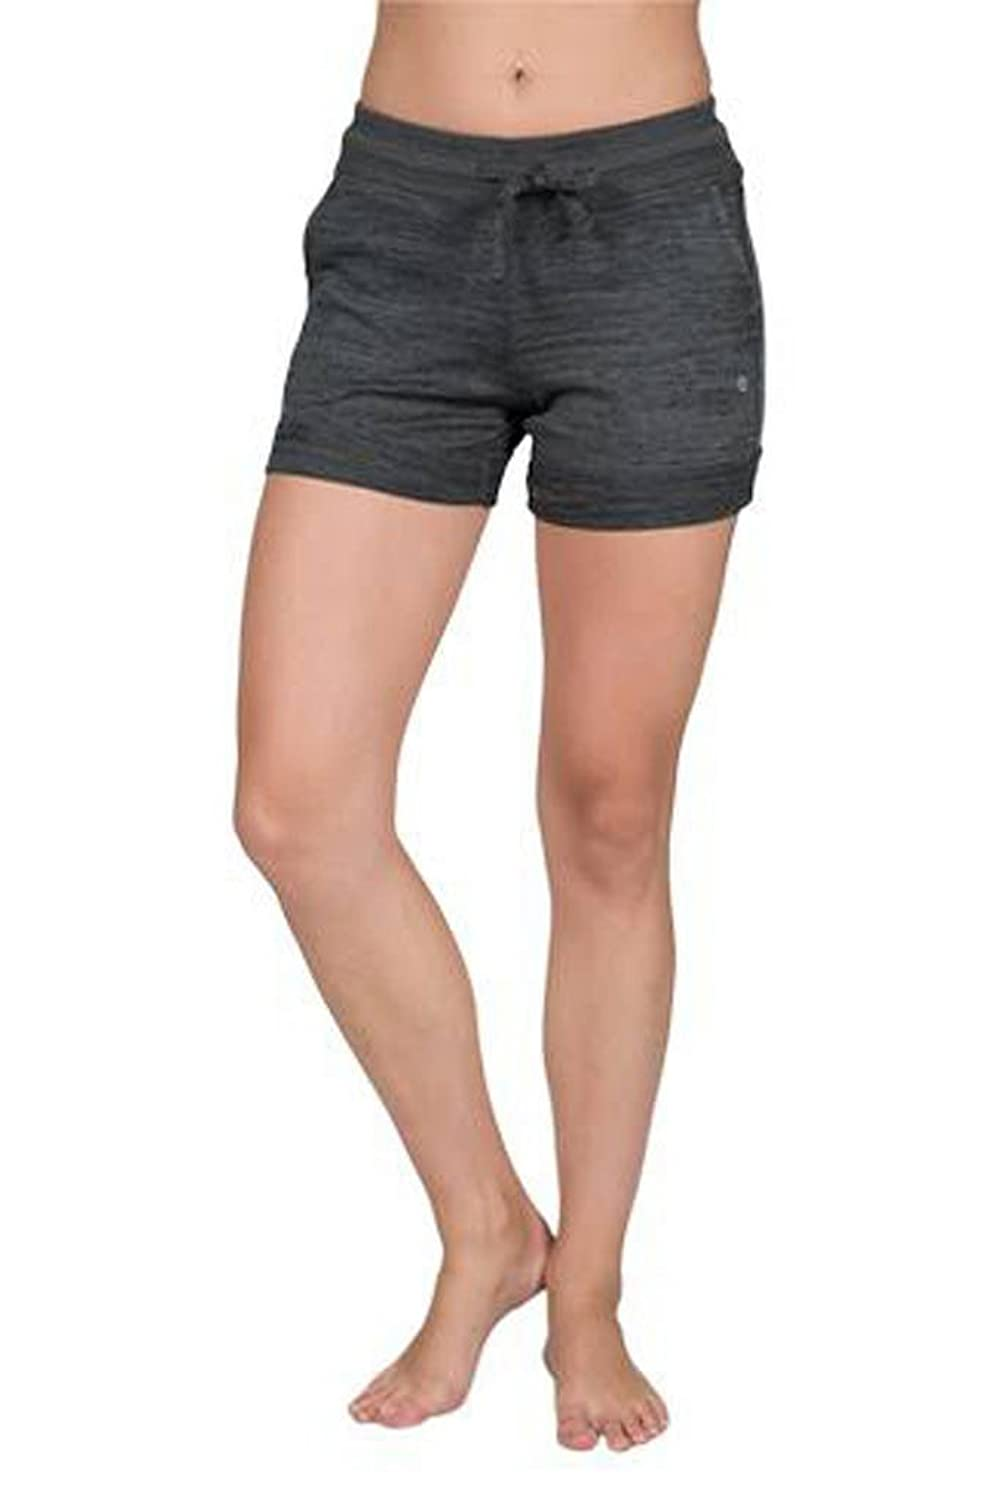 90 Degree By Reflex Activewear Lounge Shorts